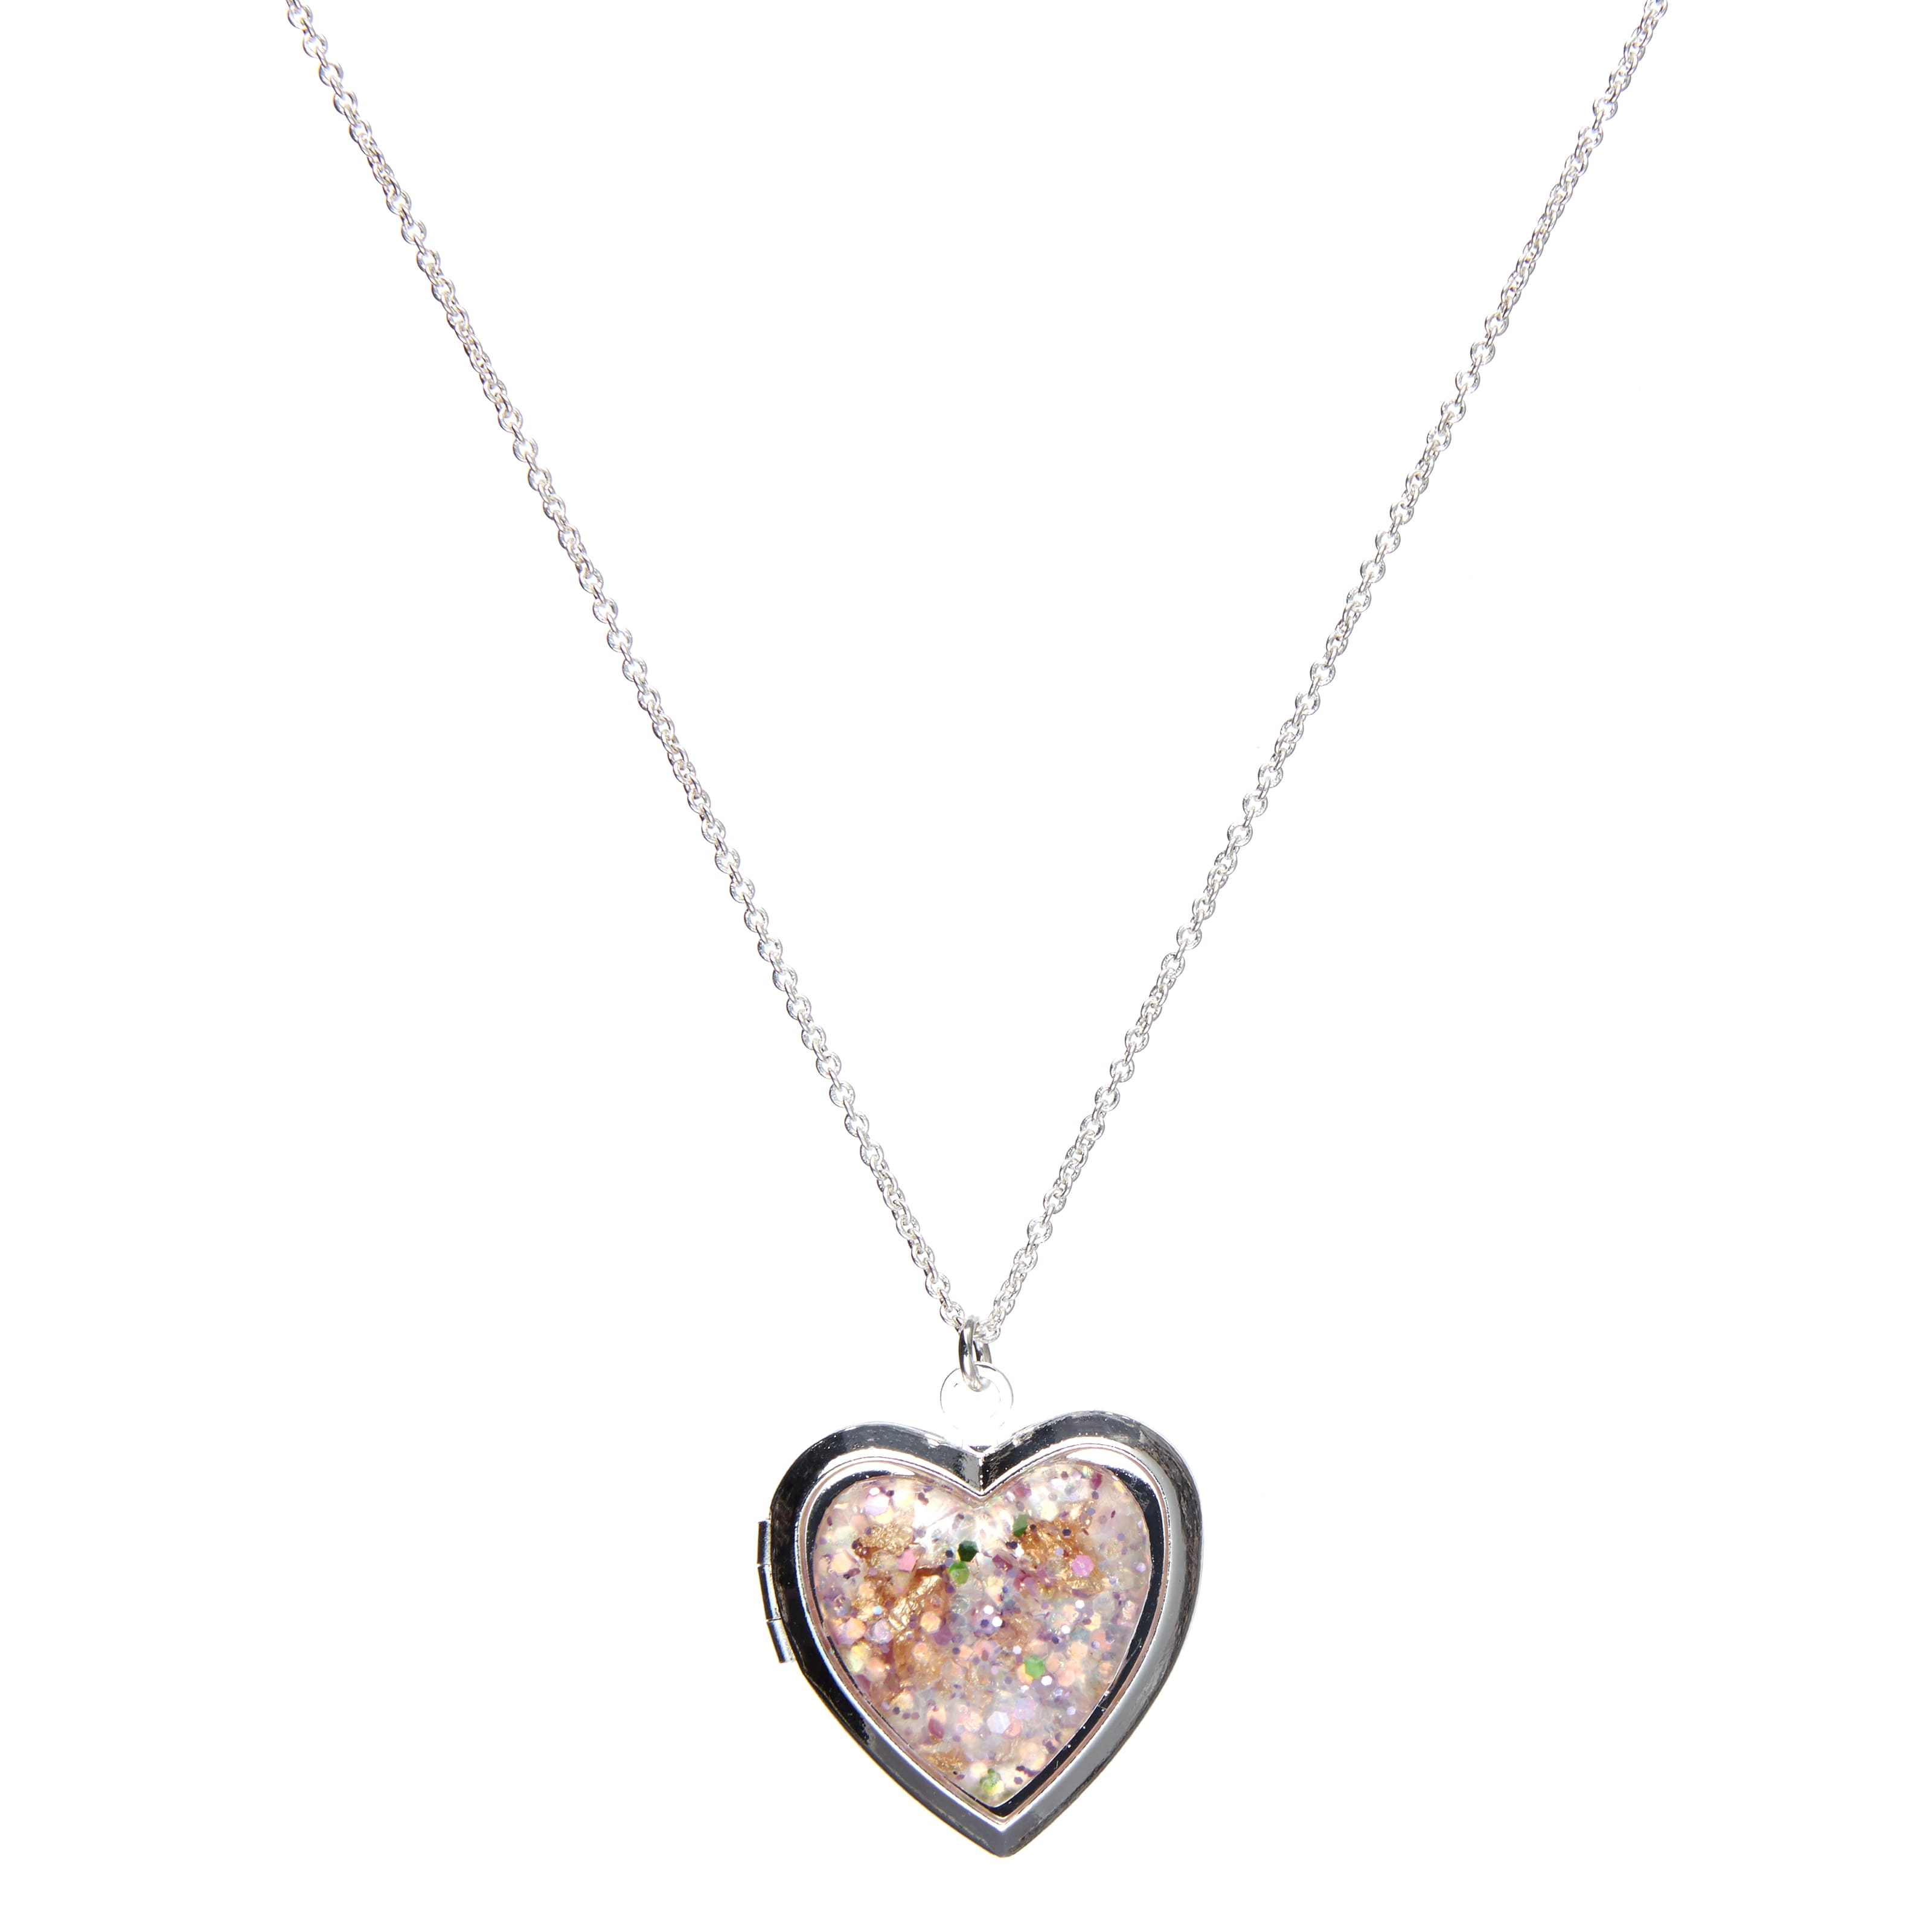 Charming Locket Necklace